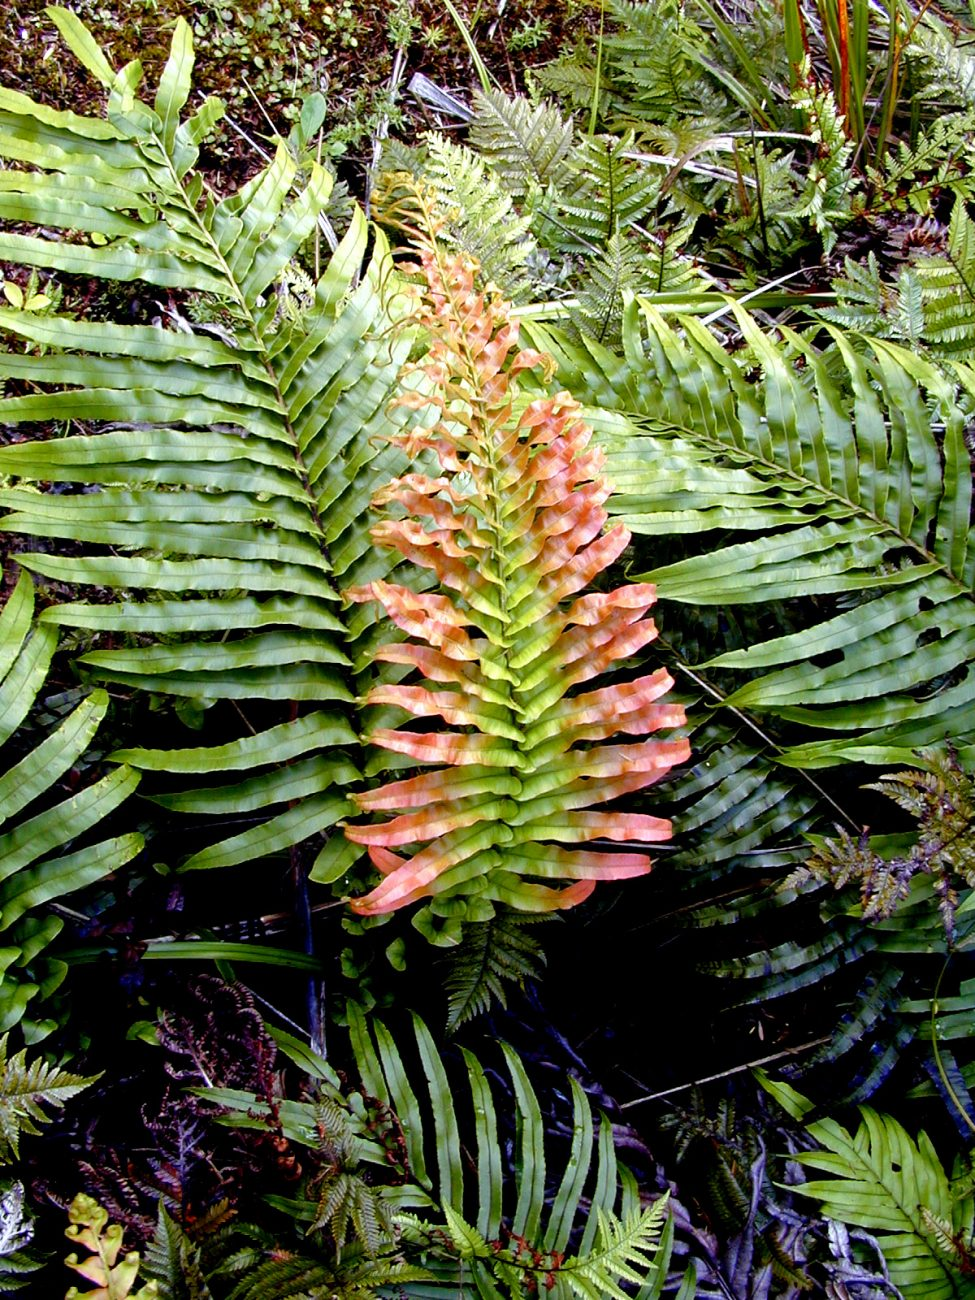 Red pigments occur throughout the plant kingdom. The brown colour of the mosses at top are a mixture of red and green pigments, while new growth in ferns (Blechnum, as seen here) and podocarps (rimu) also has a rosy hue. In all cases the red pigments are anthocyanins, familiar also in cherries, grapes, roses and radishes.